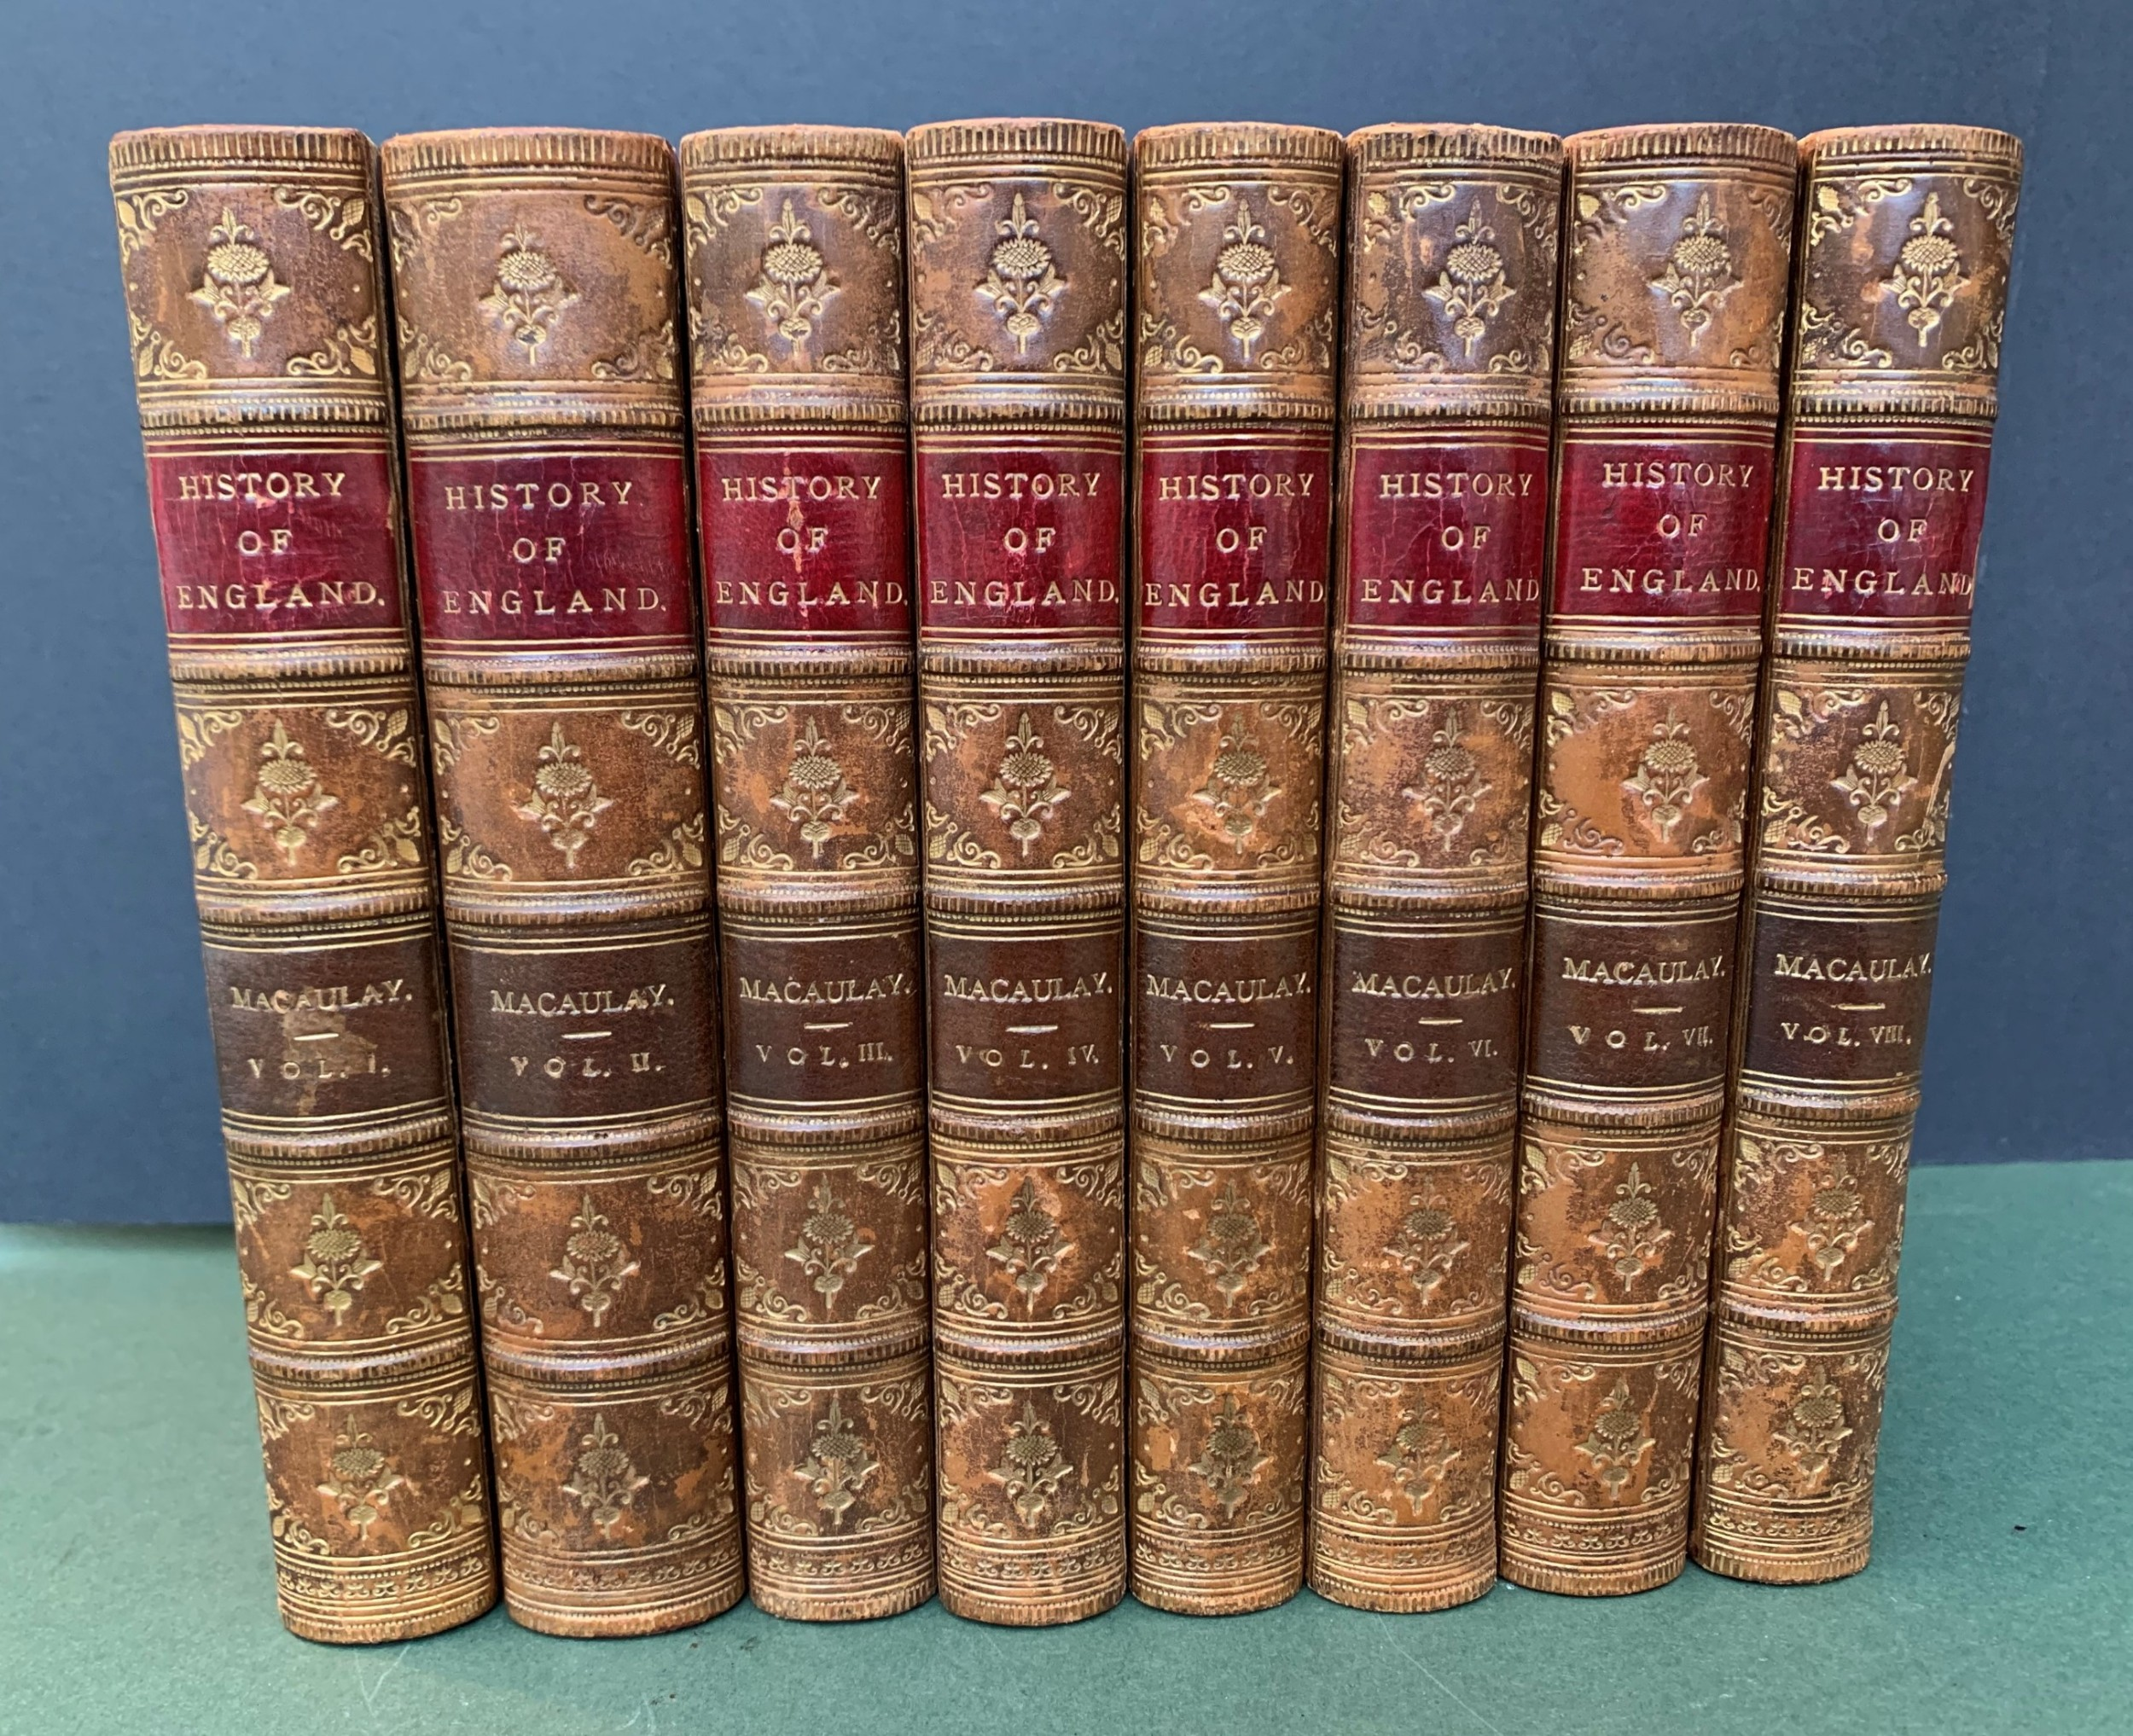 macaulay's history of england dated 1885 complete in 8 books